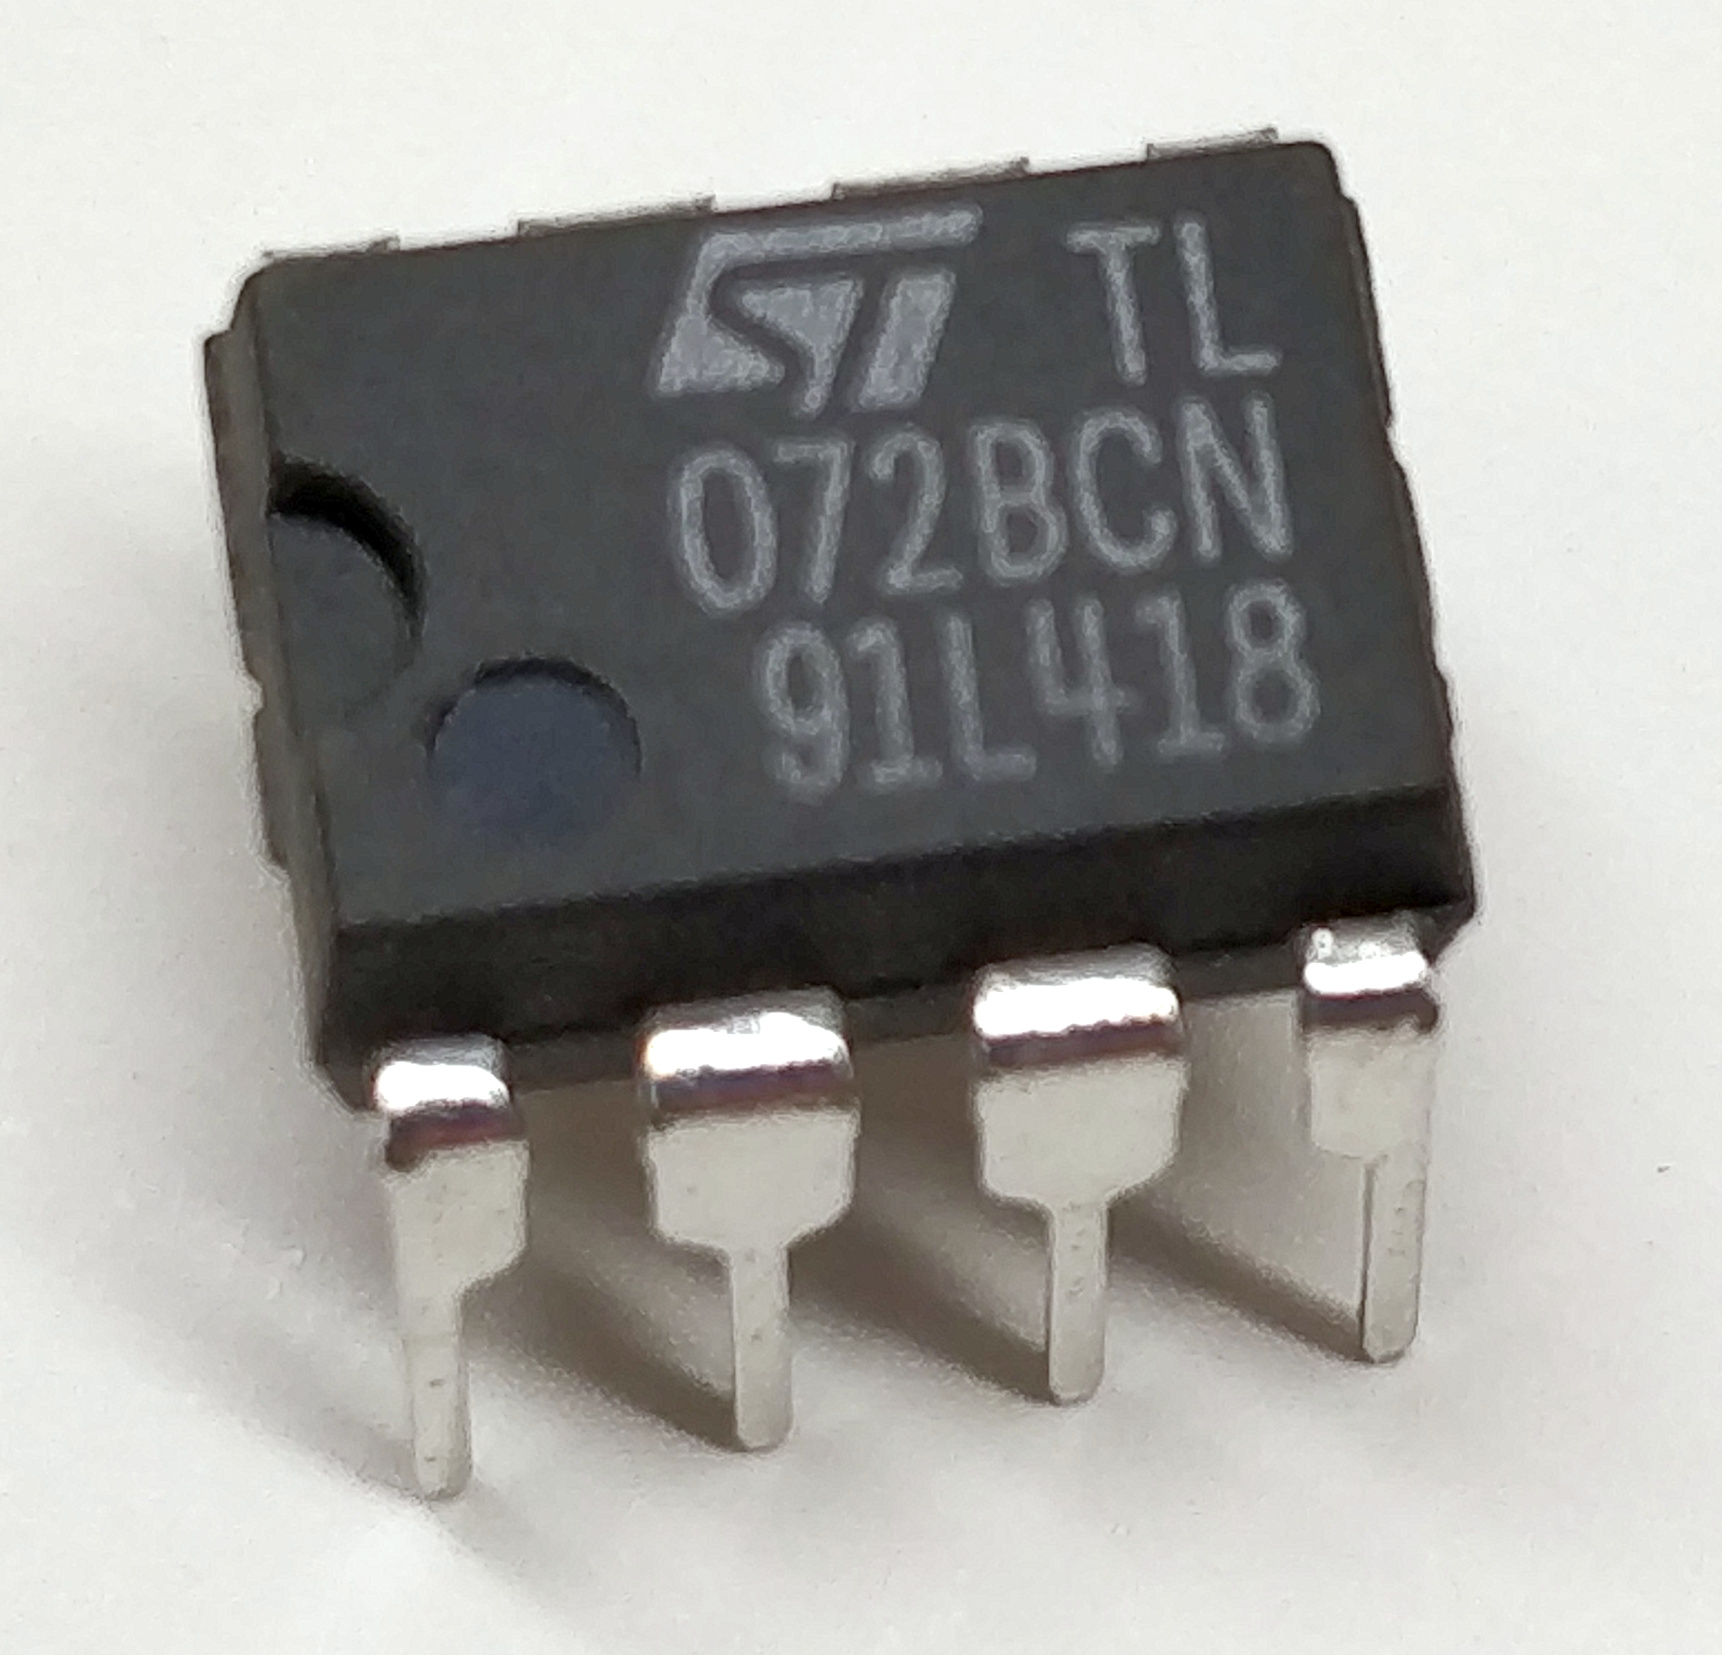 10 Pieces Tl072bcn Low Noise J Fet Dual Op Amp Tl082 Dip8 Ebay Operational Amplifier Schematic